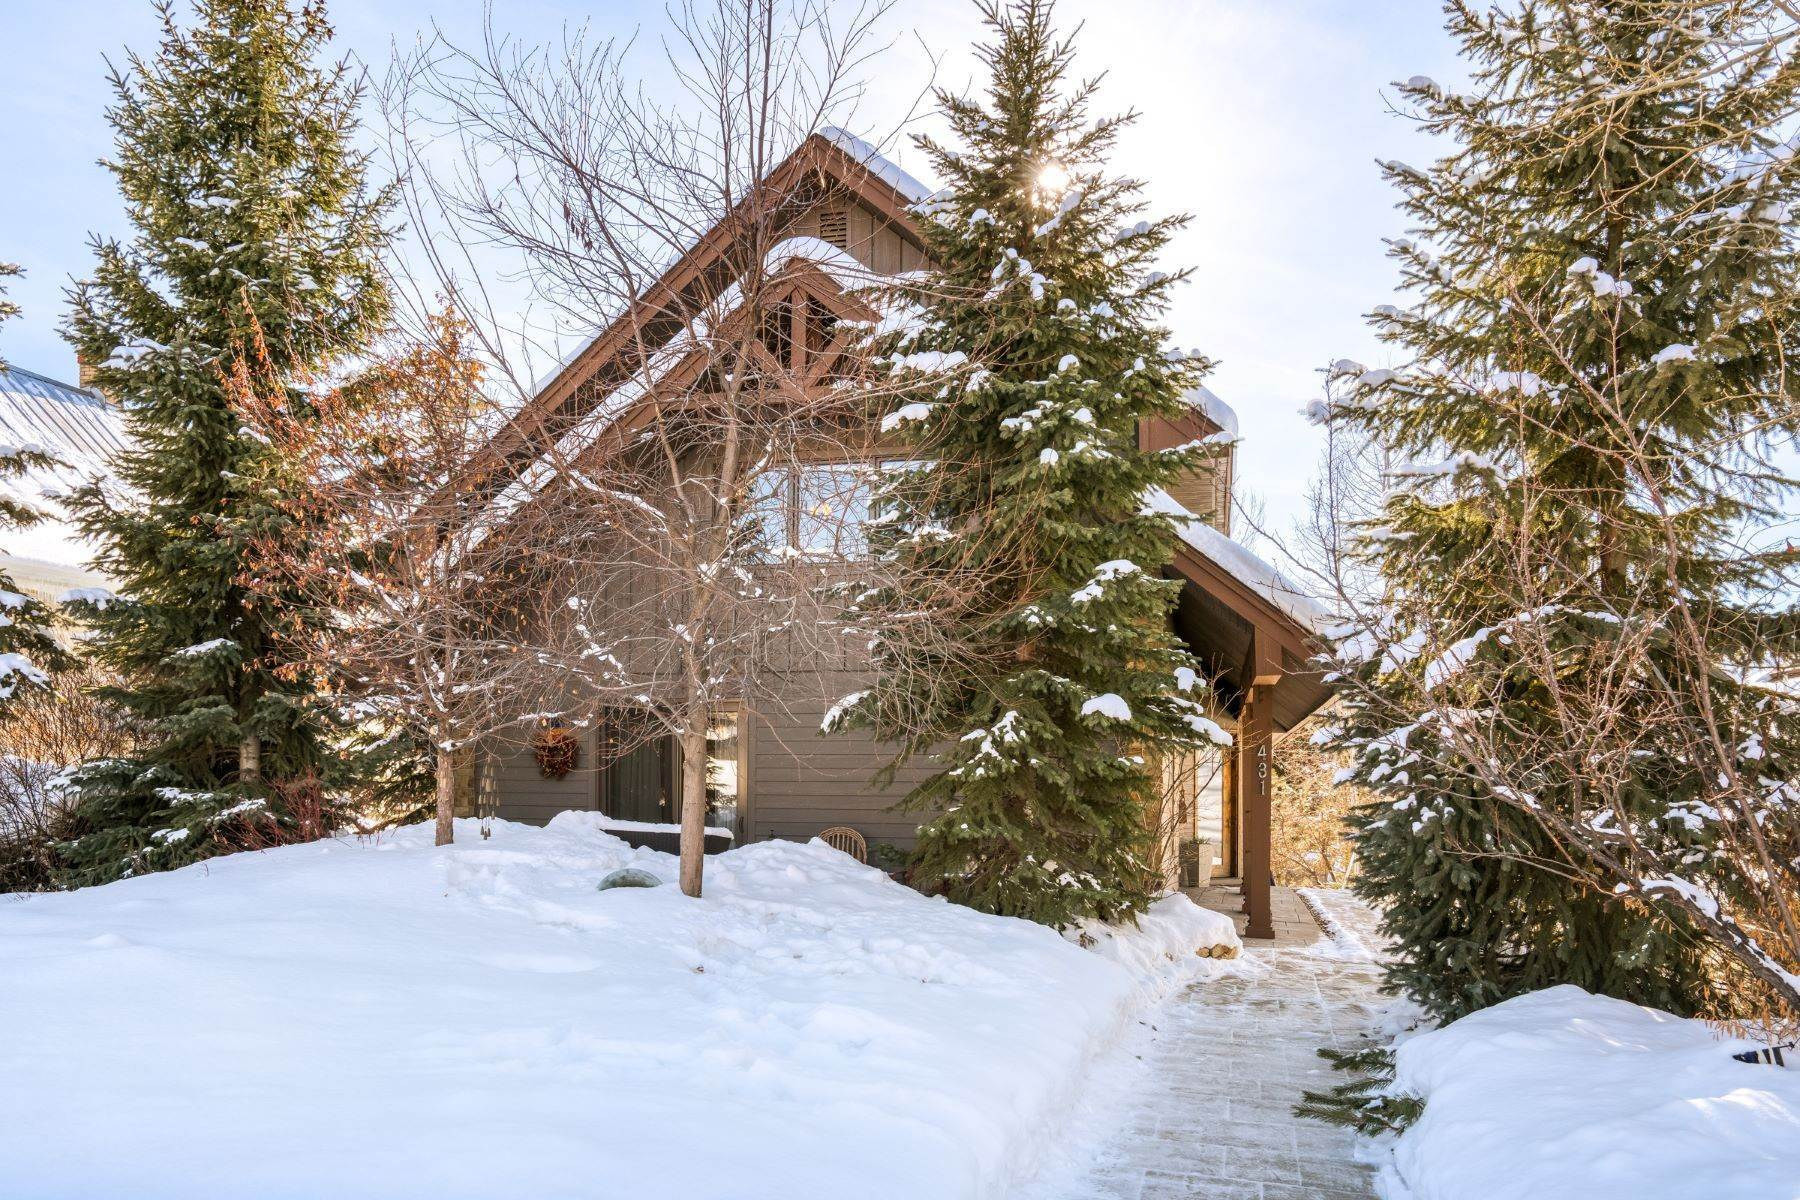 Property for Sale at Downtown Steamboat Home 431 Pine Street Steamboat Springs, Colorado 80487 United States